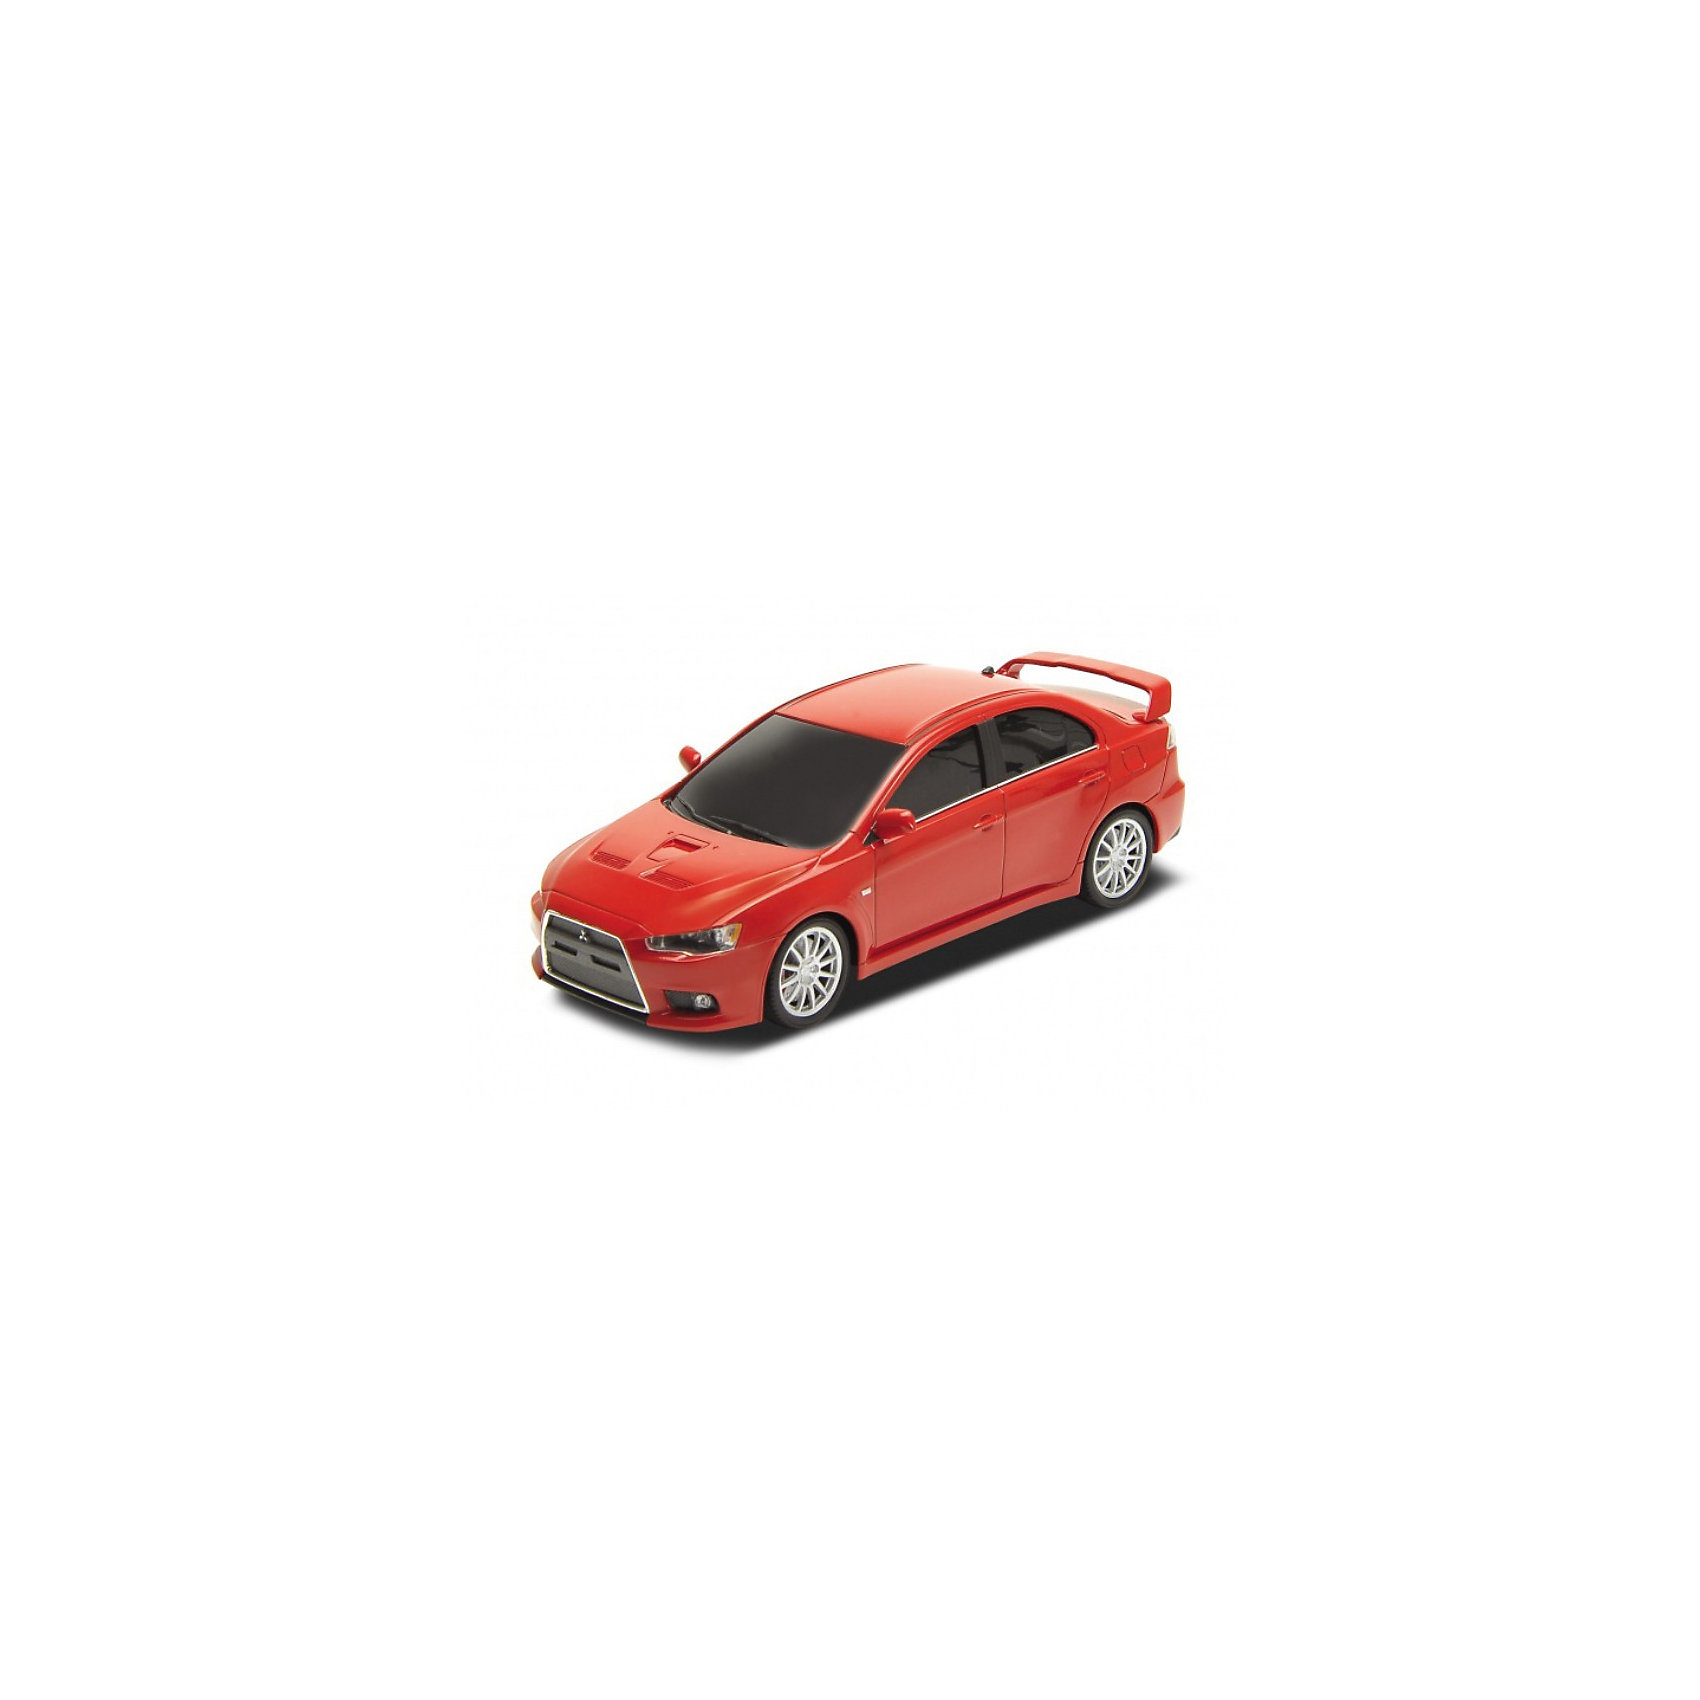 ������ ������ 1:24 Mitsubishi Lancer Evolution X, �/�, Welly